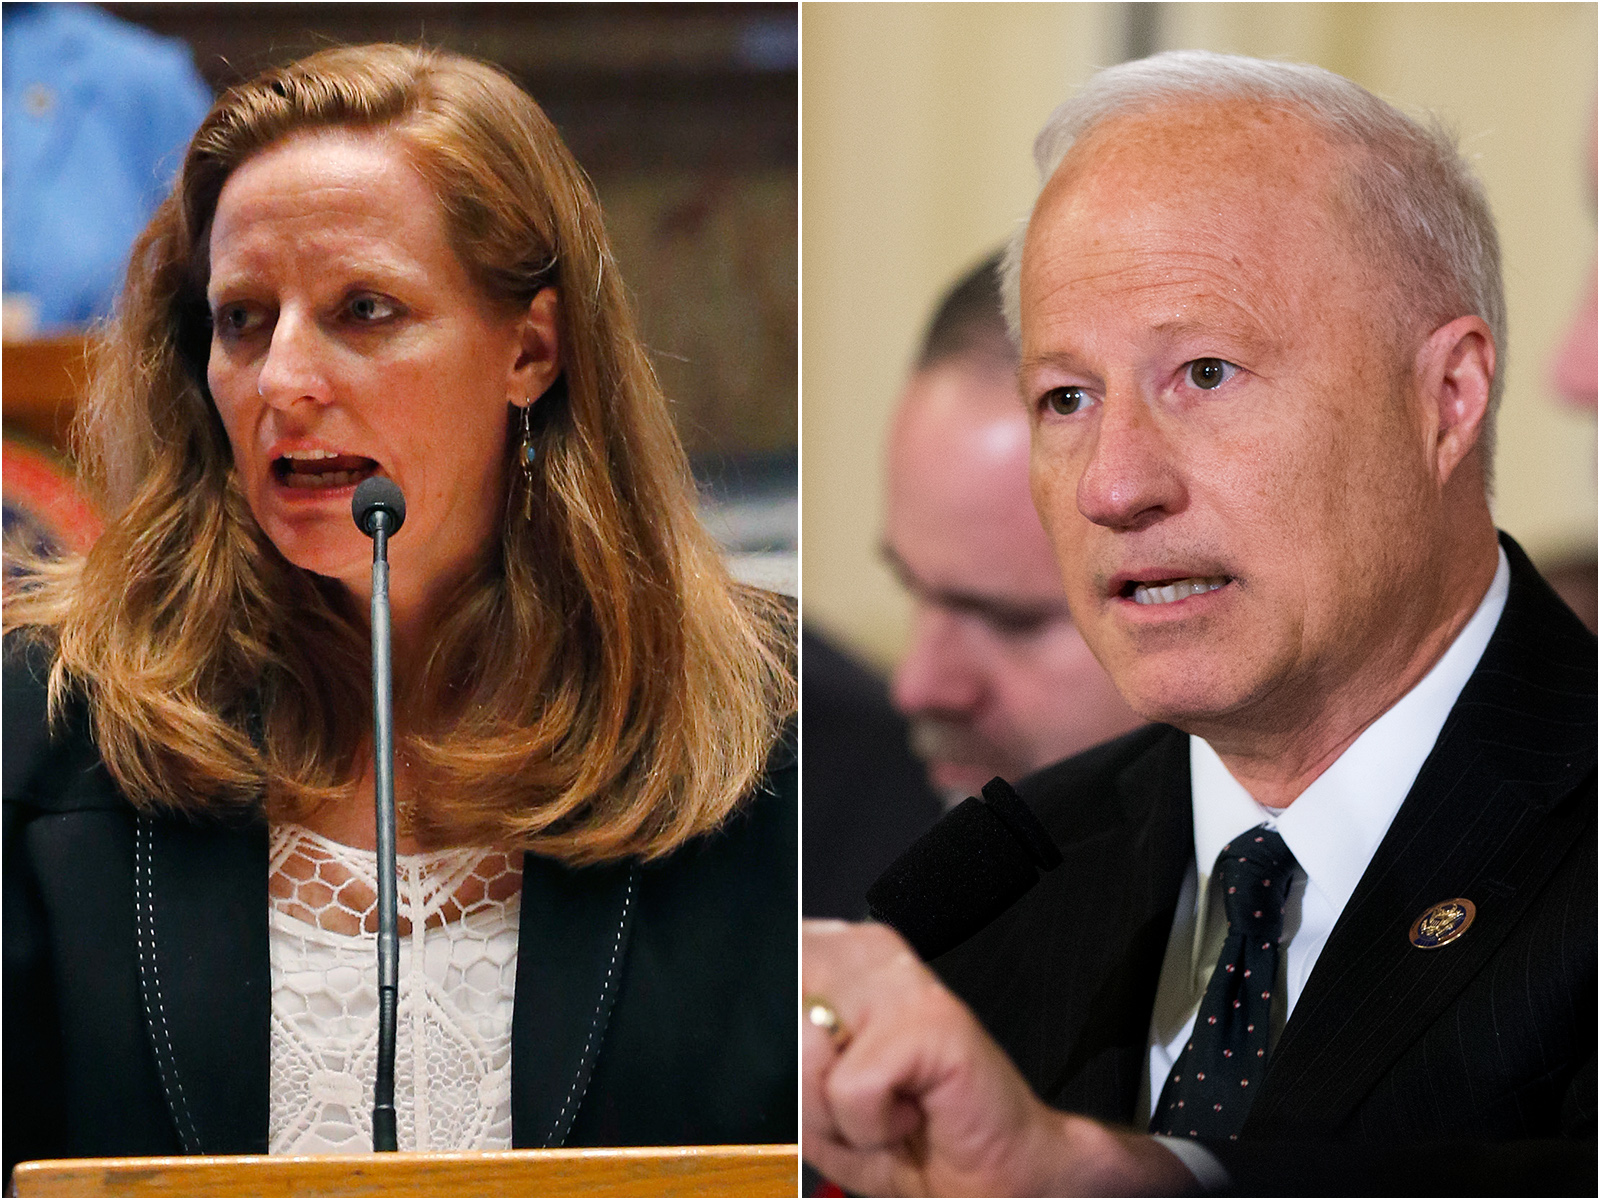 <p>State Sen. Morgan Carroll, D-Aurora, left, is challenging RepublicanU.S. Rep. Mike Coffmann in Colorado's 6th Congressional District.</p>